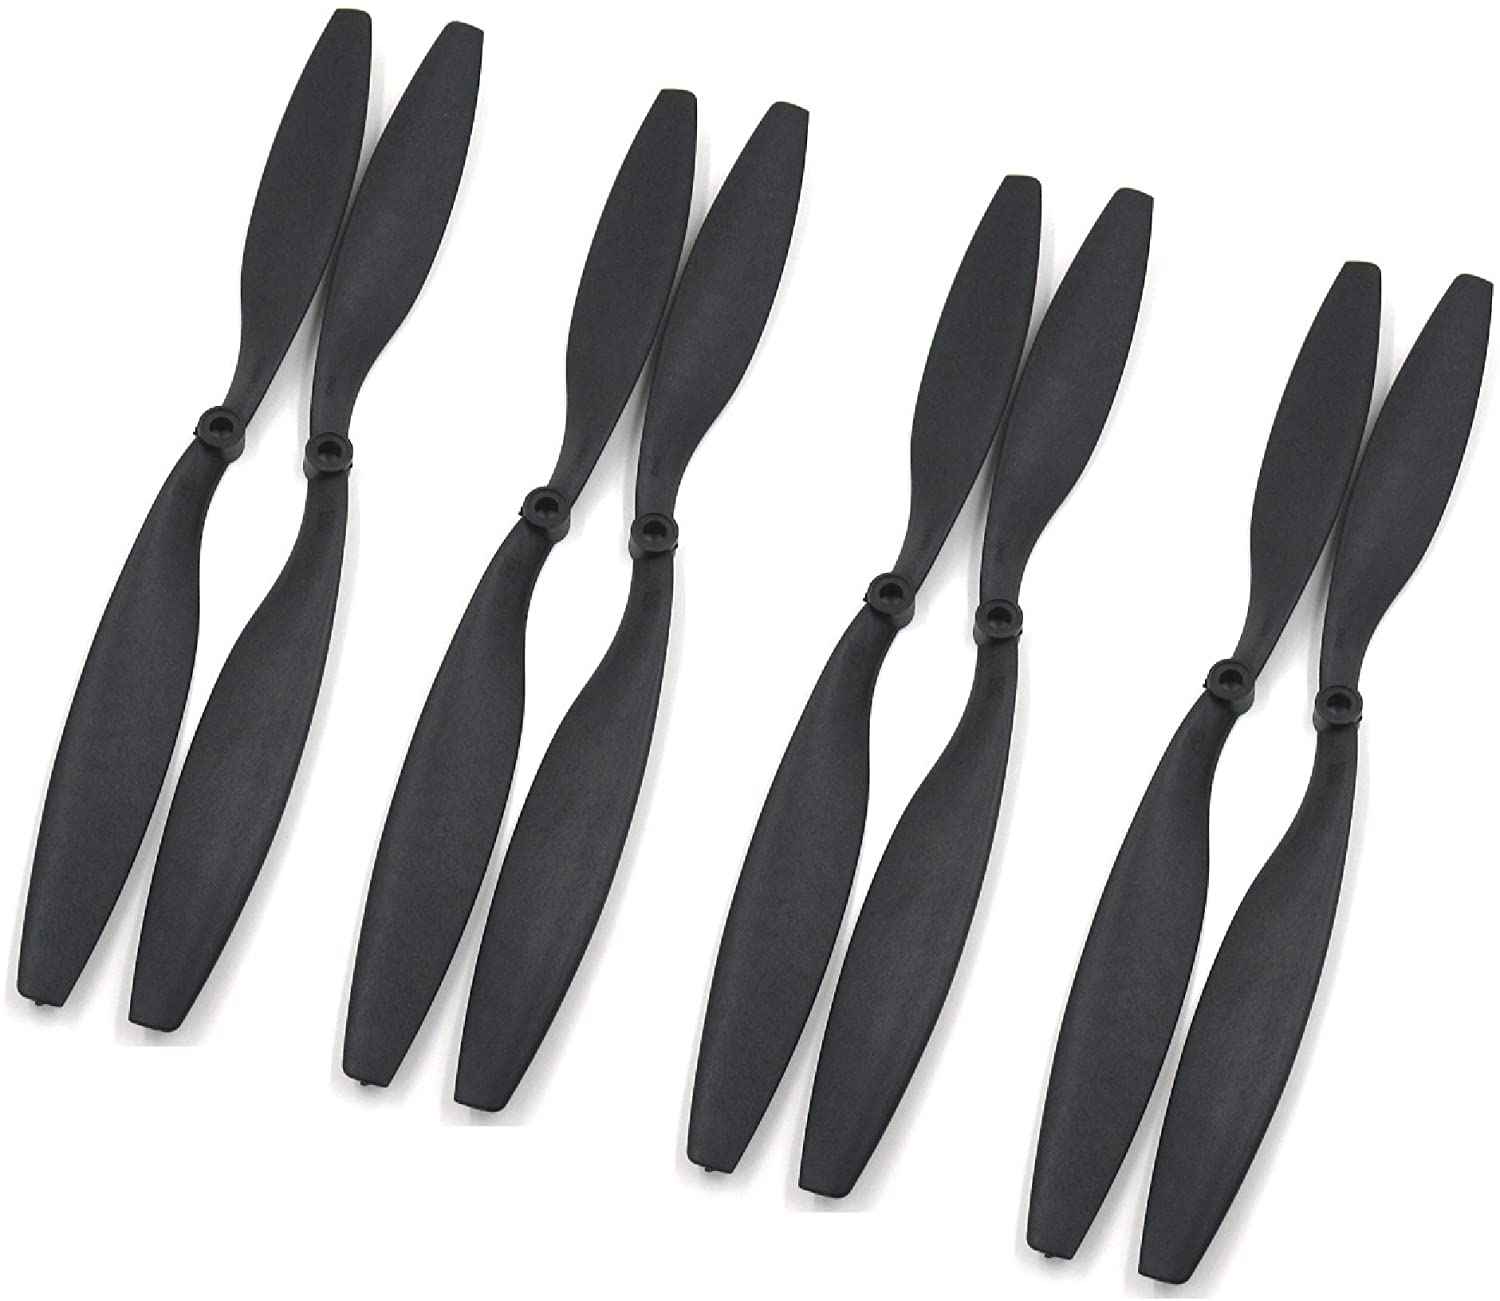 RAYCorp 1245 12x4.5 Propellers. 8 Pieces(4 CW, 4 CCW) Black 12-inch Quadcopter + Battery Strap